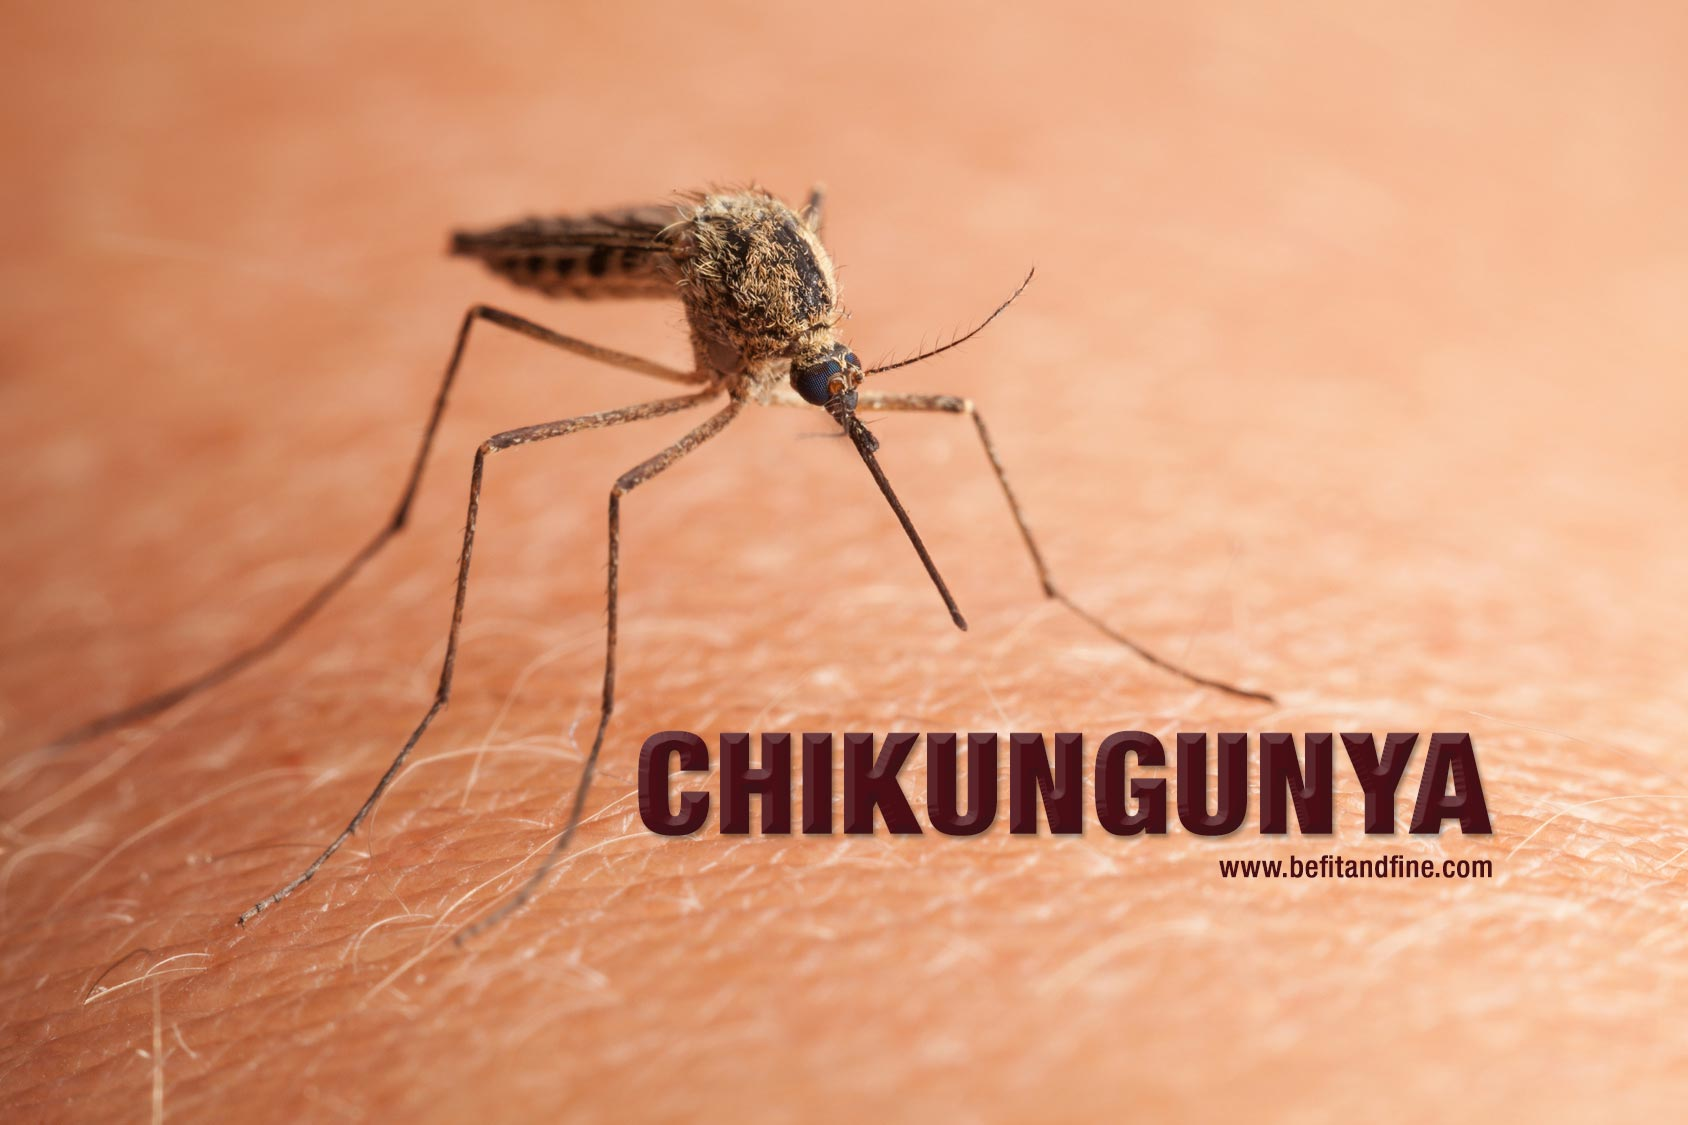 chikungunya fever a review of the literature 1 zika virus literature review rev july 13, 2016 zika virus literature review (as of july 13, 2016) updates since last revision are noted in blue.